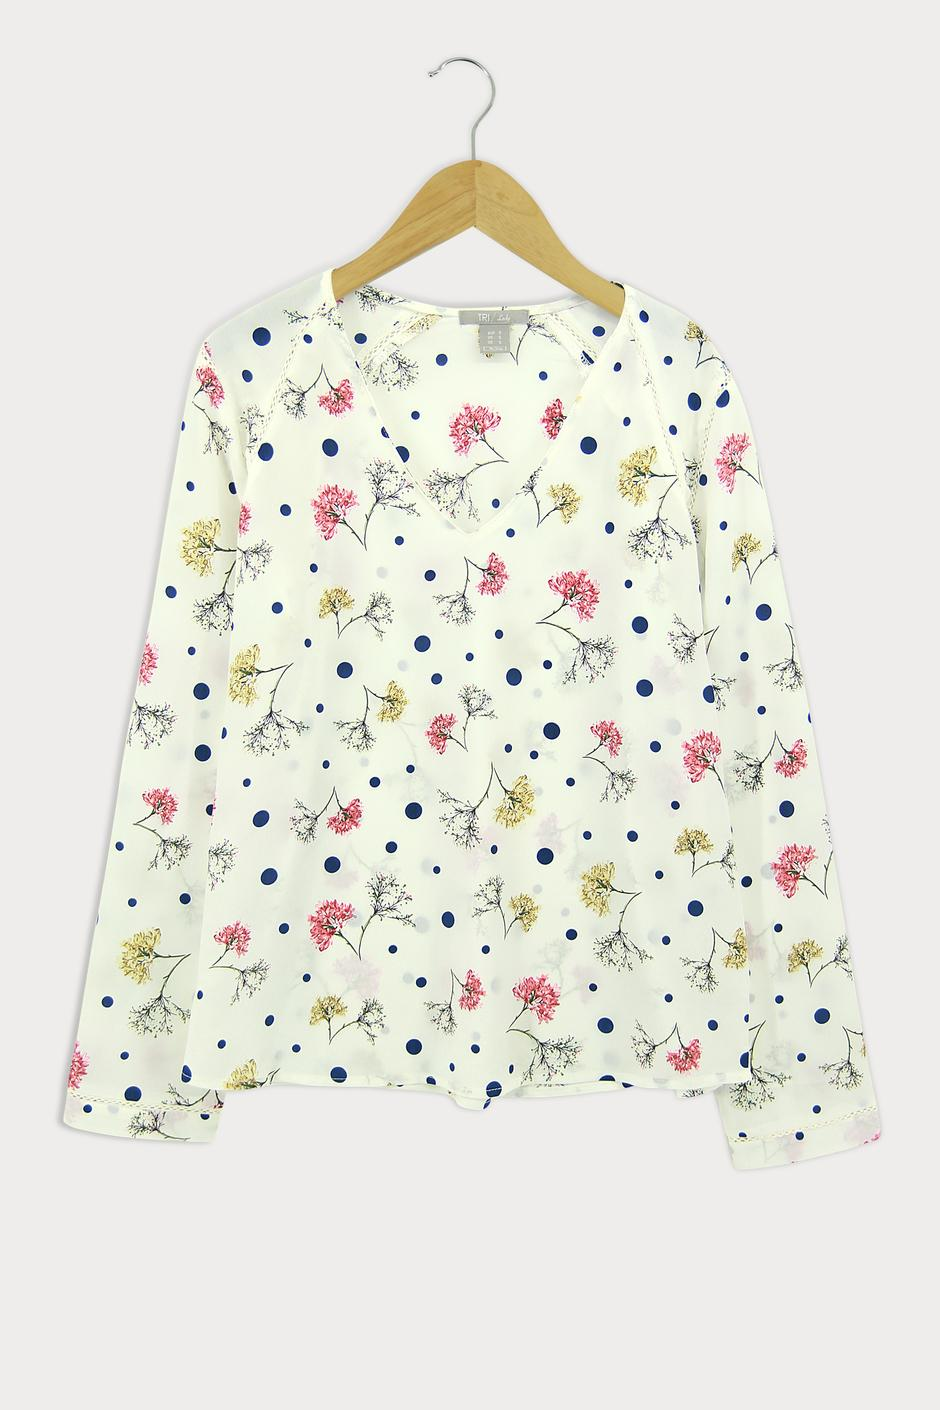 Lady Blouse Floral (LBF - 4013)